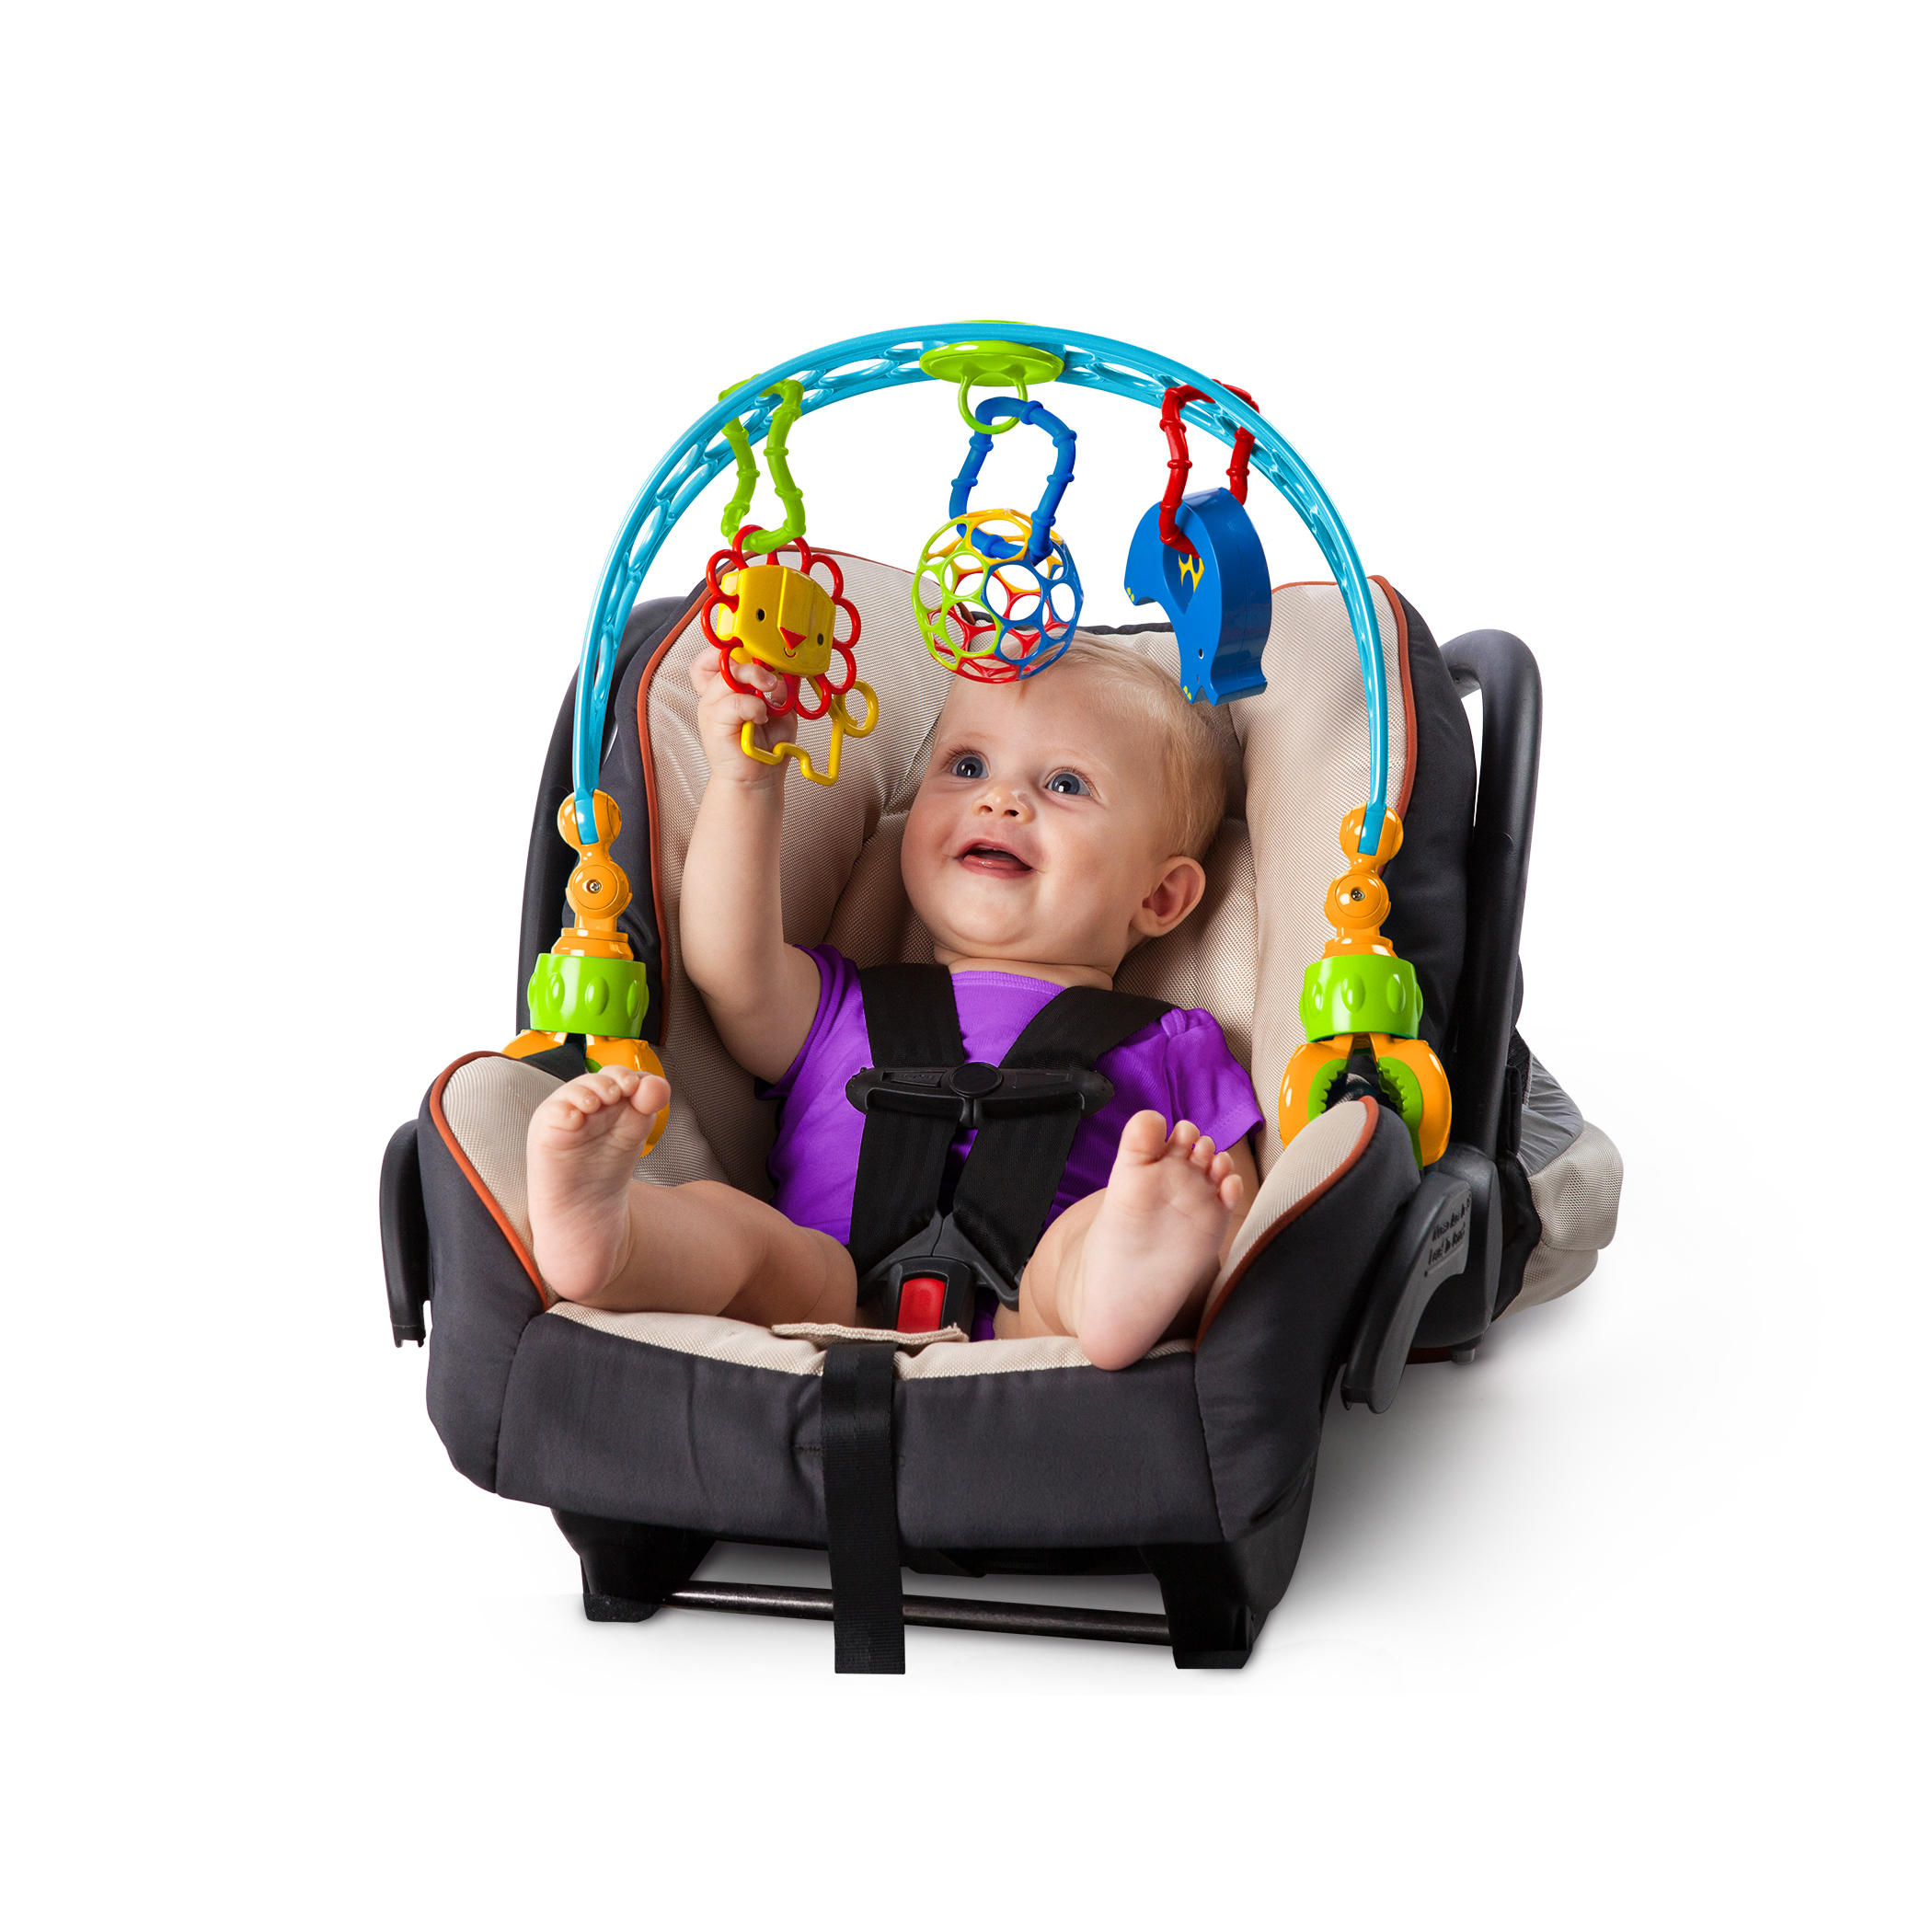 Flex 'n Go Activity Arch™ Take-Along Toy